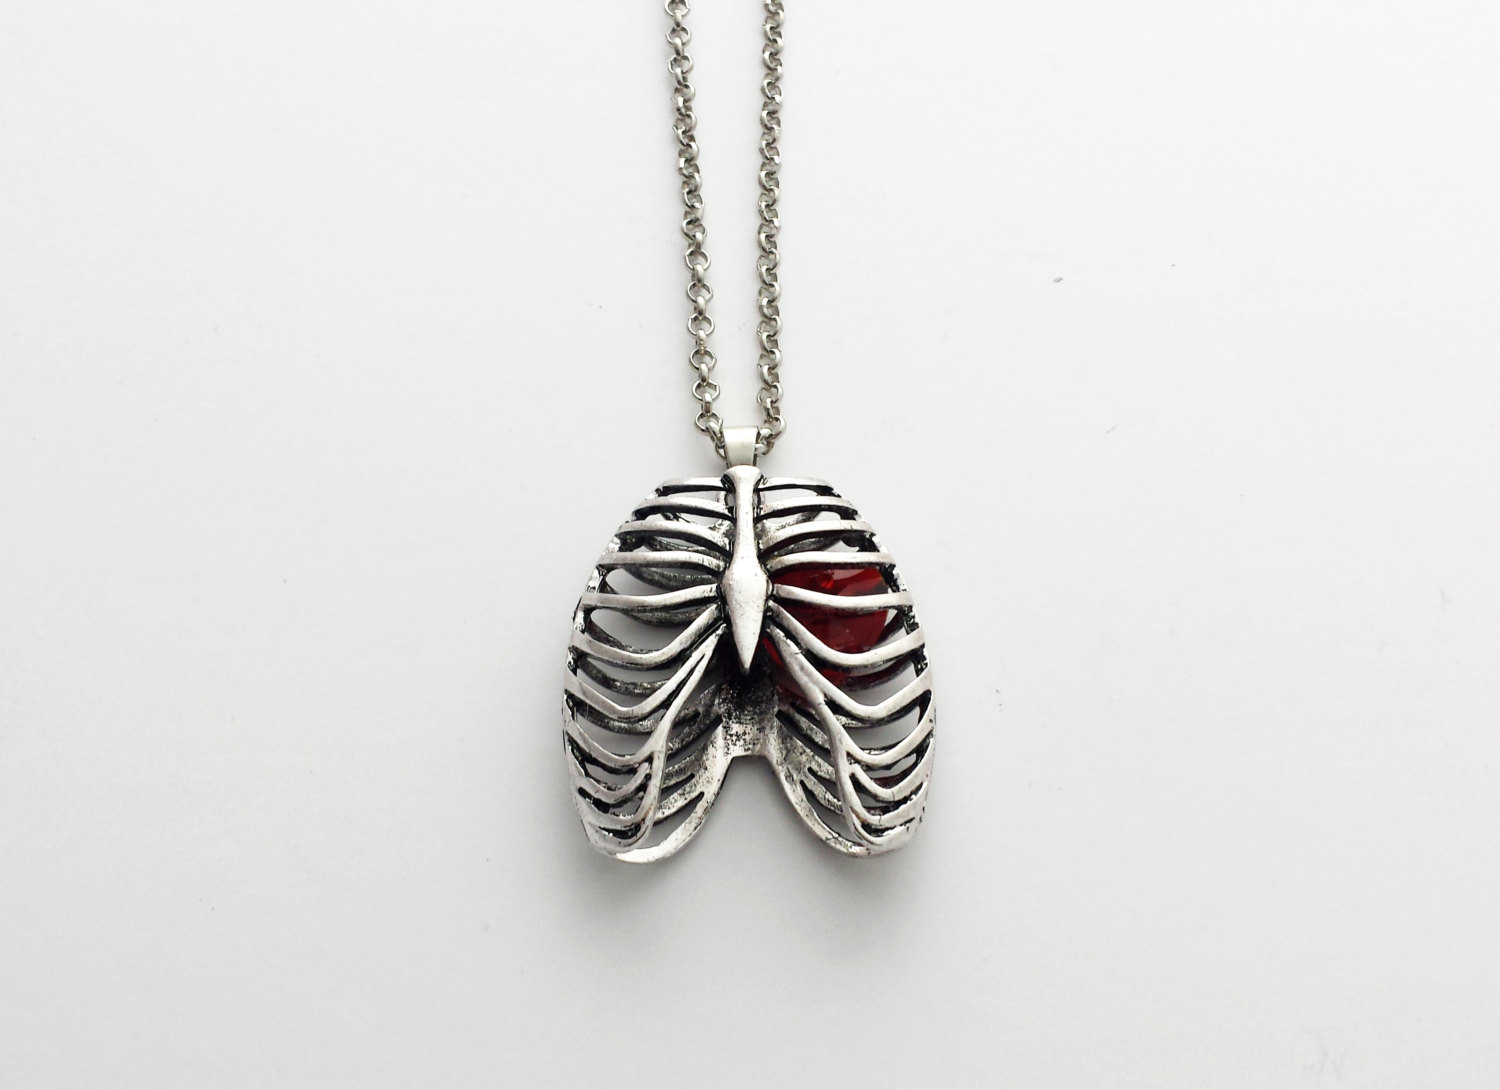 Anatomical rib cage with heart necklace // stainless steel // unisex skeleton necklace // dark mori // gothic necklace